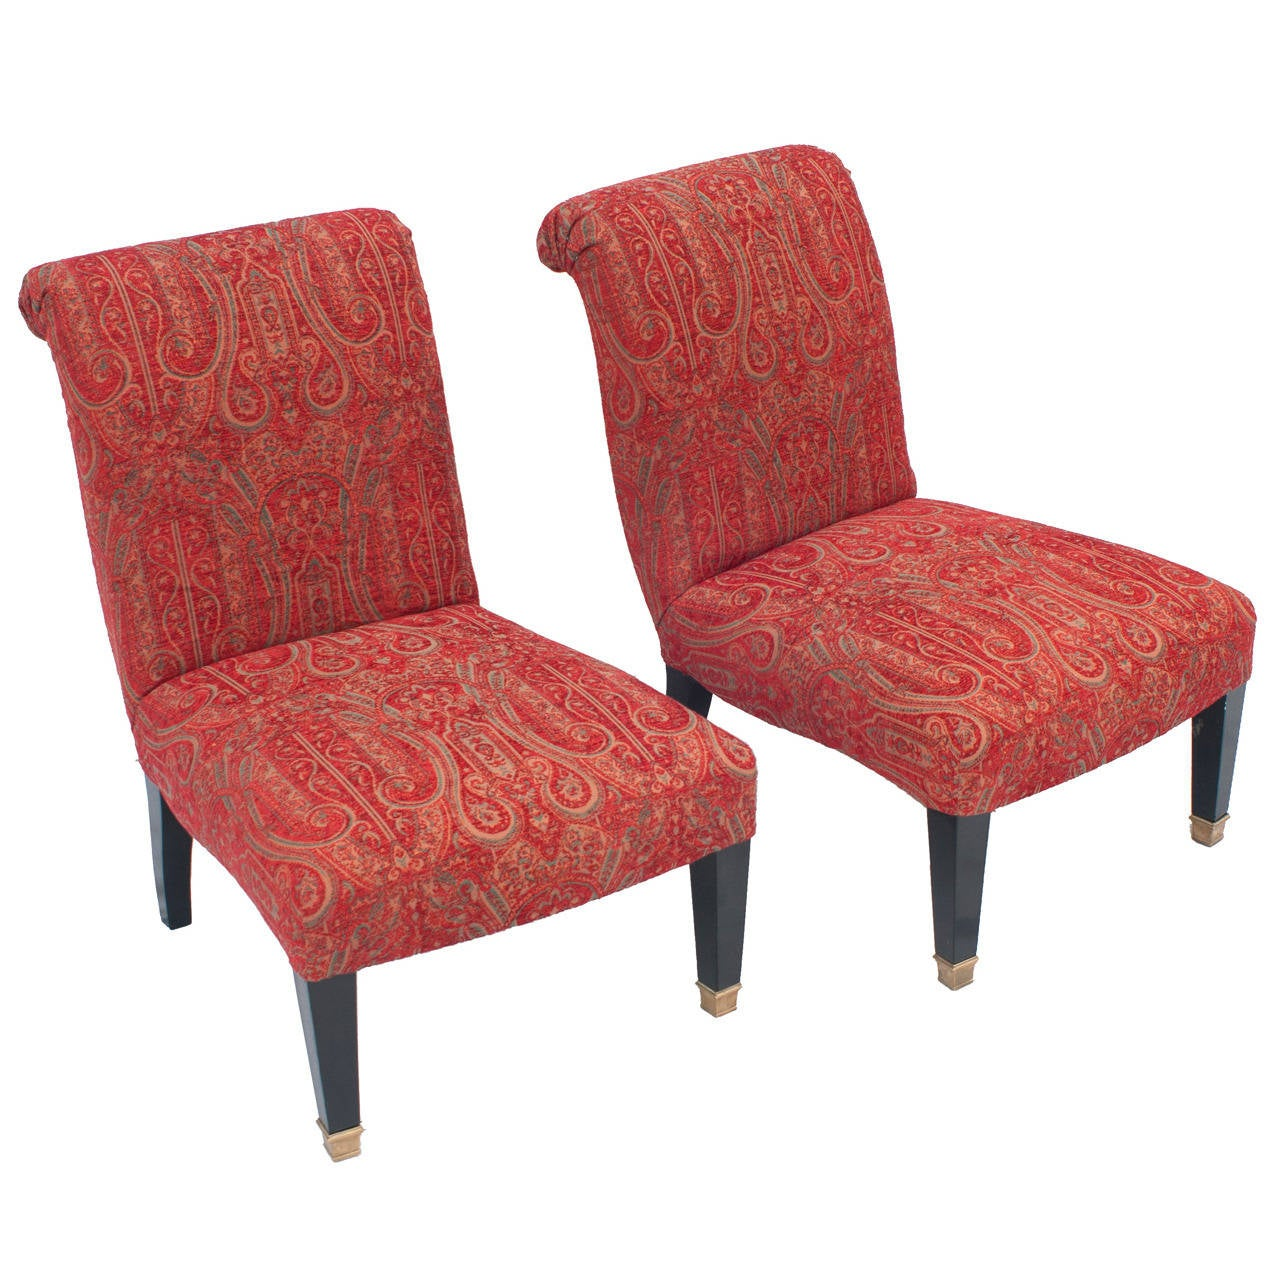 Pair of mid-century Jansen-style Slipper Chairs with Brass Caster Legs